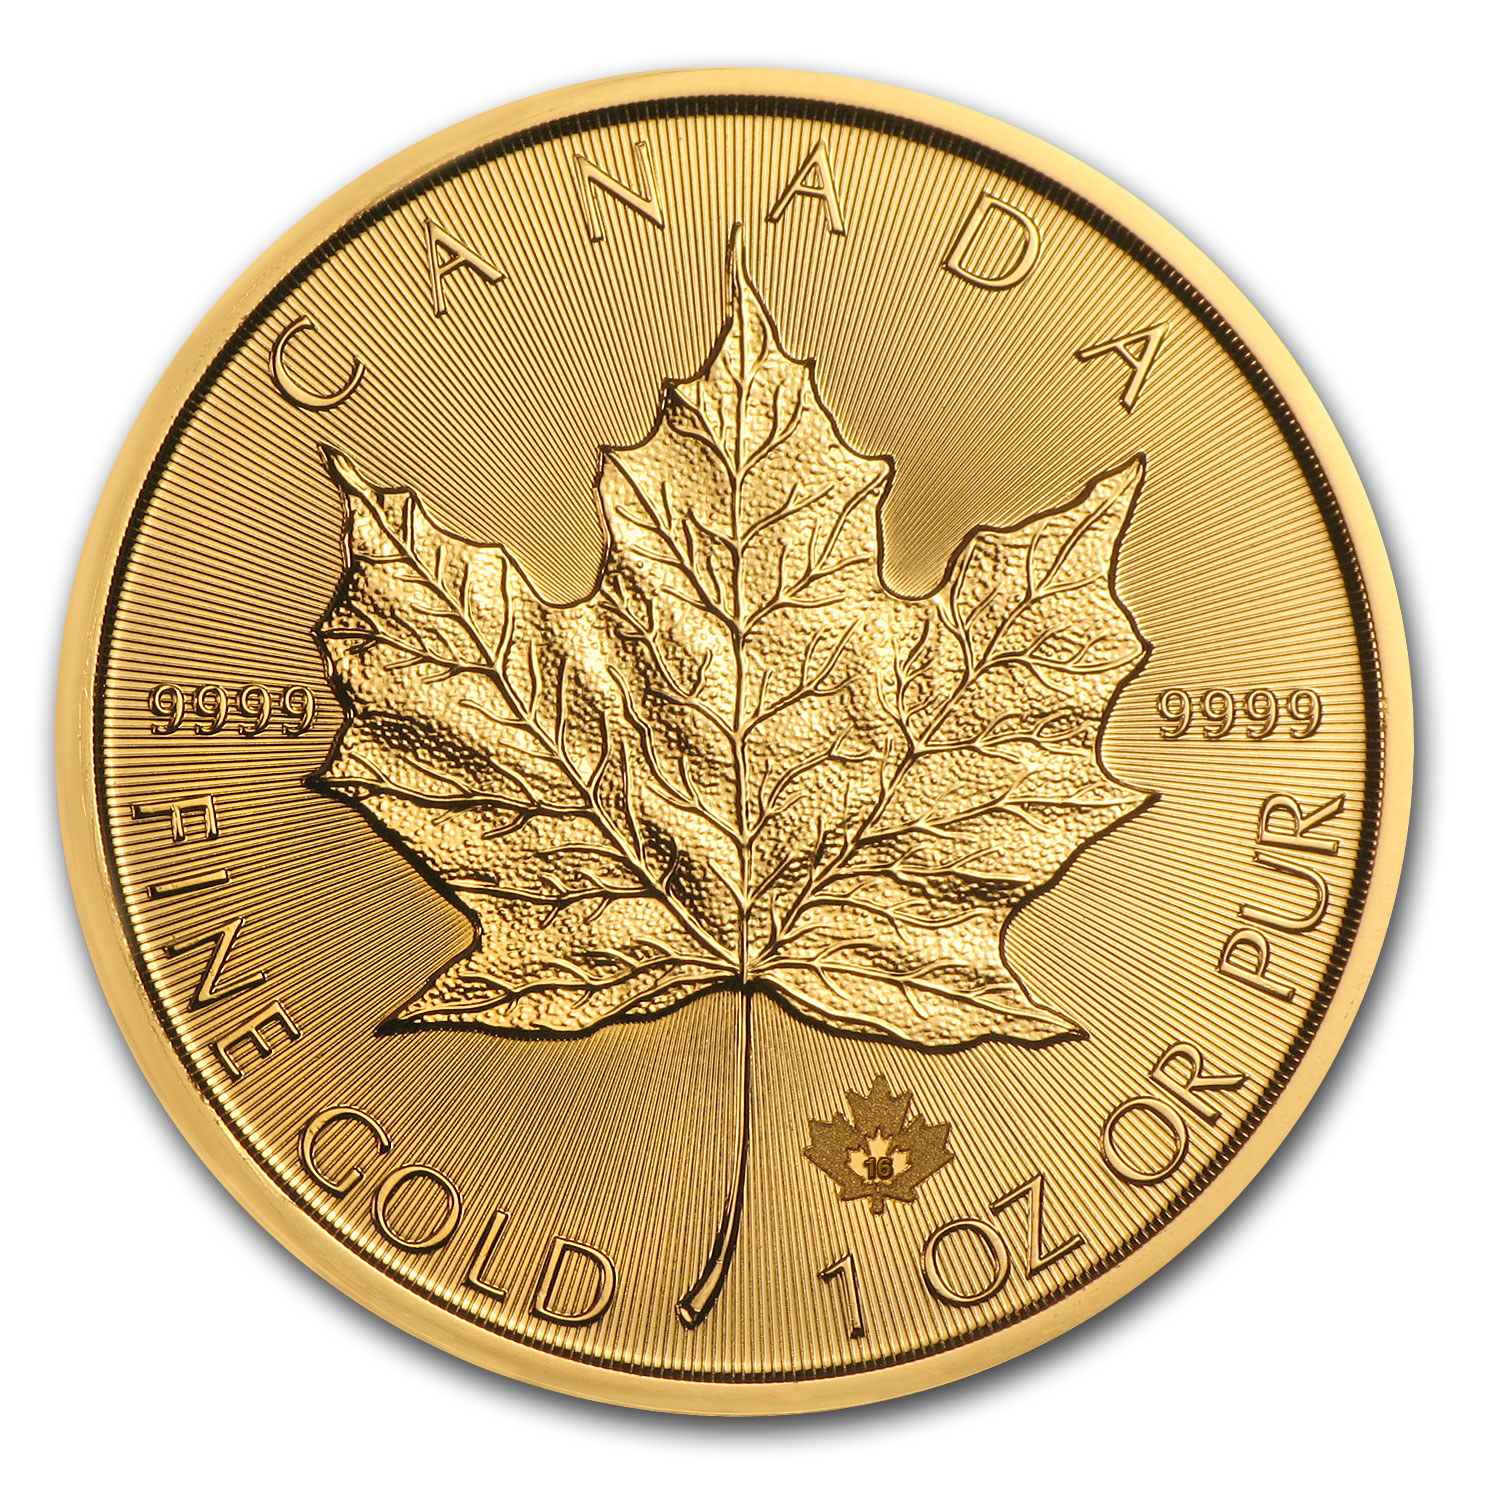 2016 Canada 1 oz Gold Maple Leaf BU